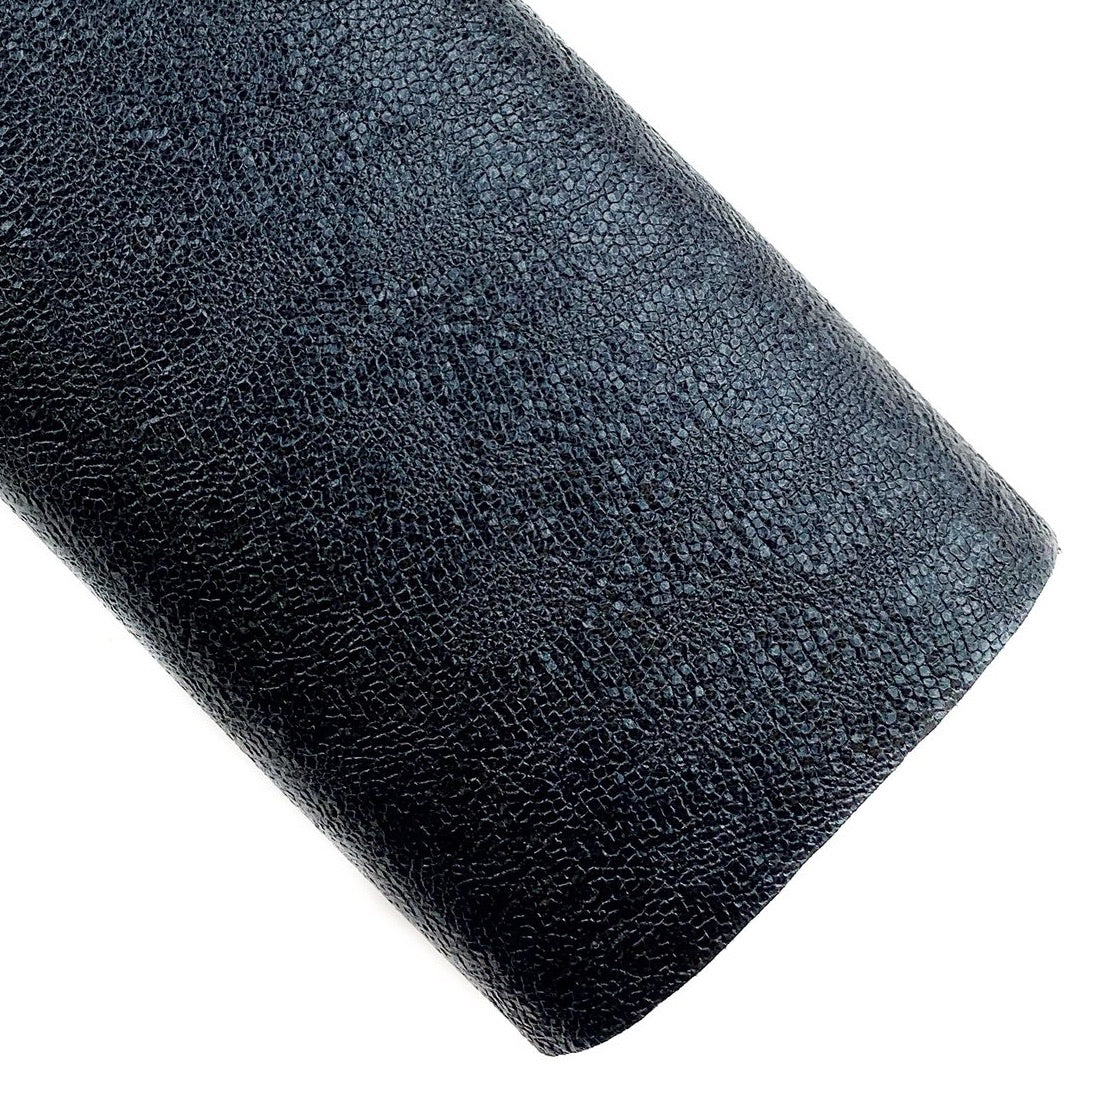 Black Royal Metallic Embossed Vegan Leather